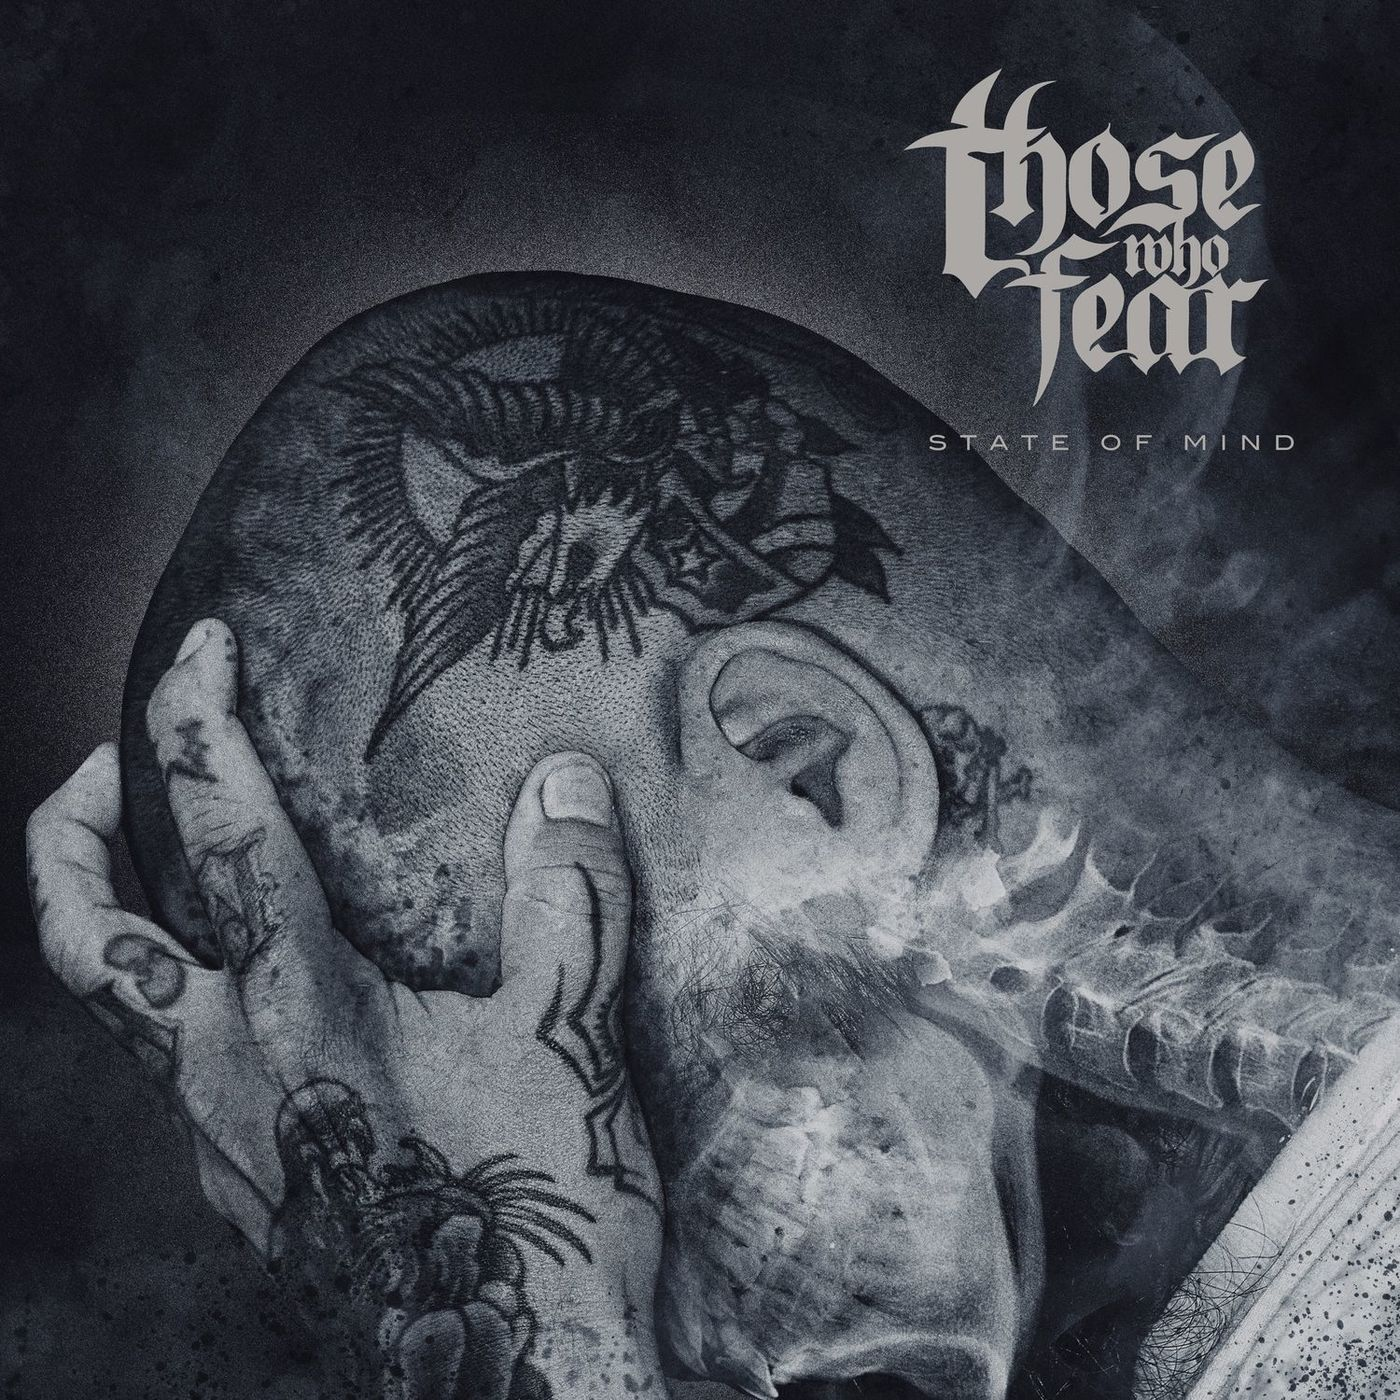 Those Who Fear - Heretic [single] (2016)